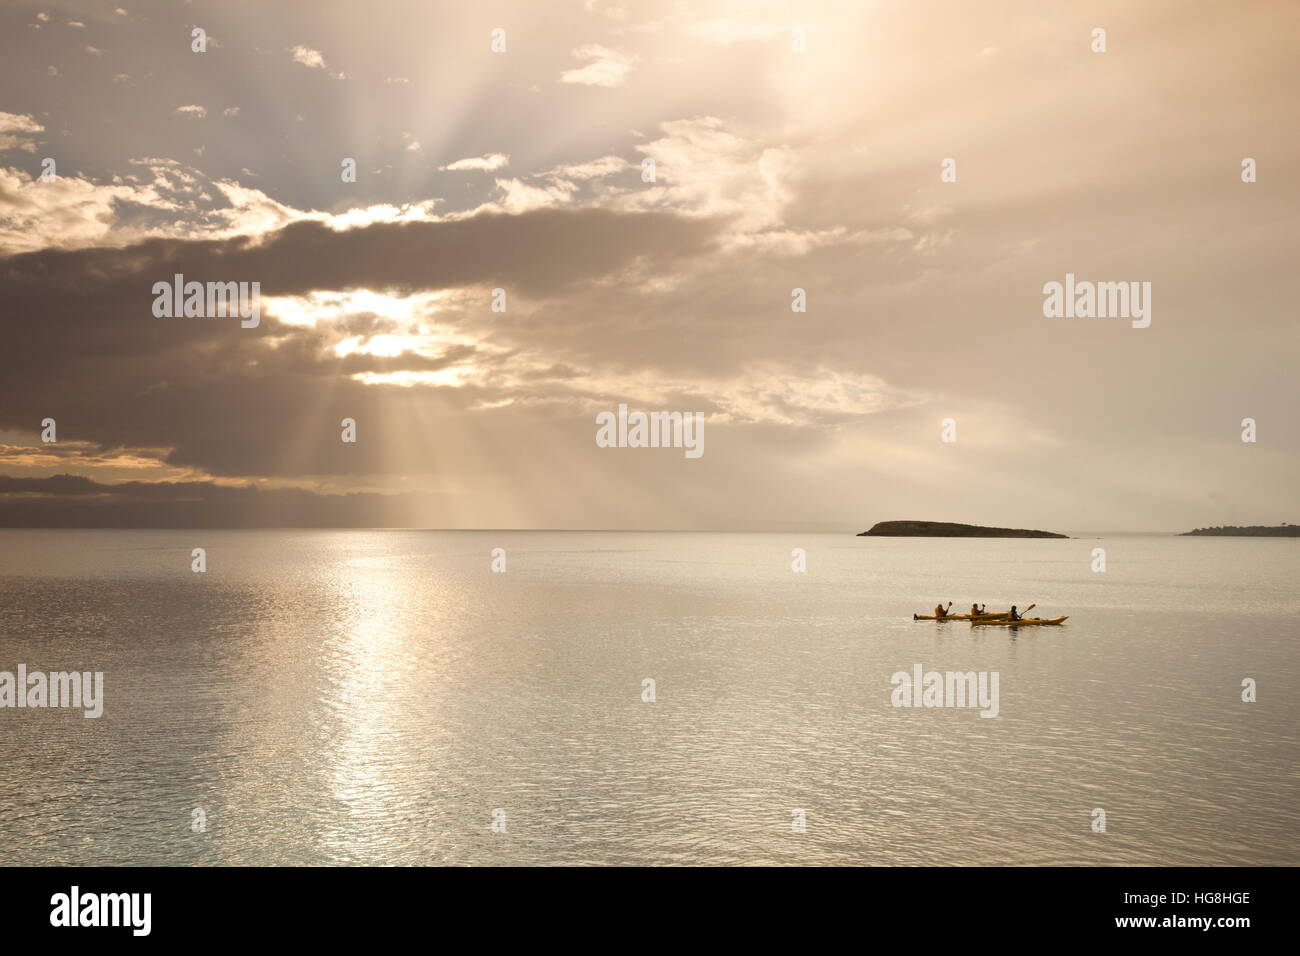 THREE kayakers on calm seas kayaking with sun behind clouds with god's rays of sunlight in Wineglass Bay, Tasmania - Stock Image